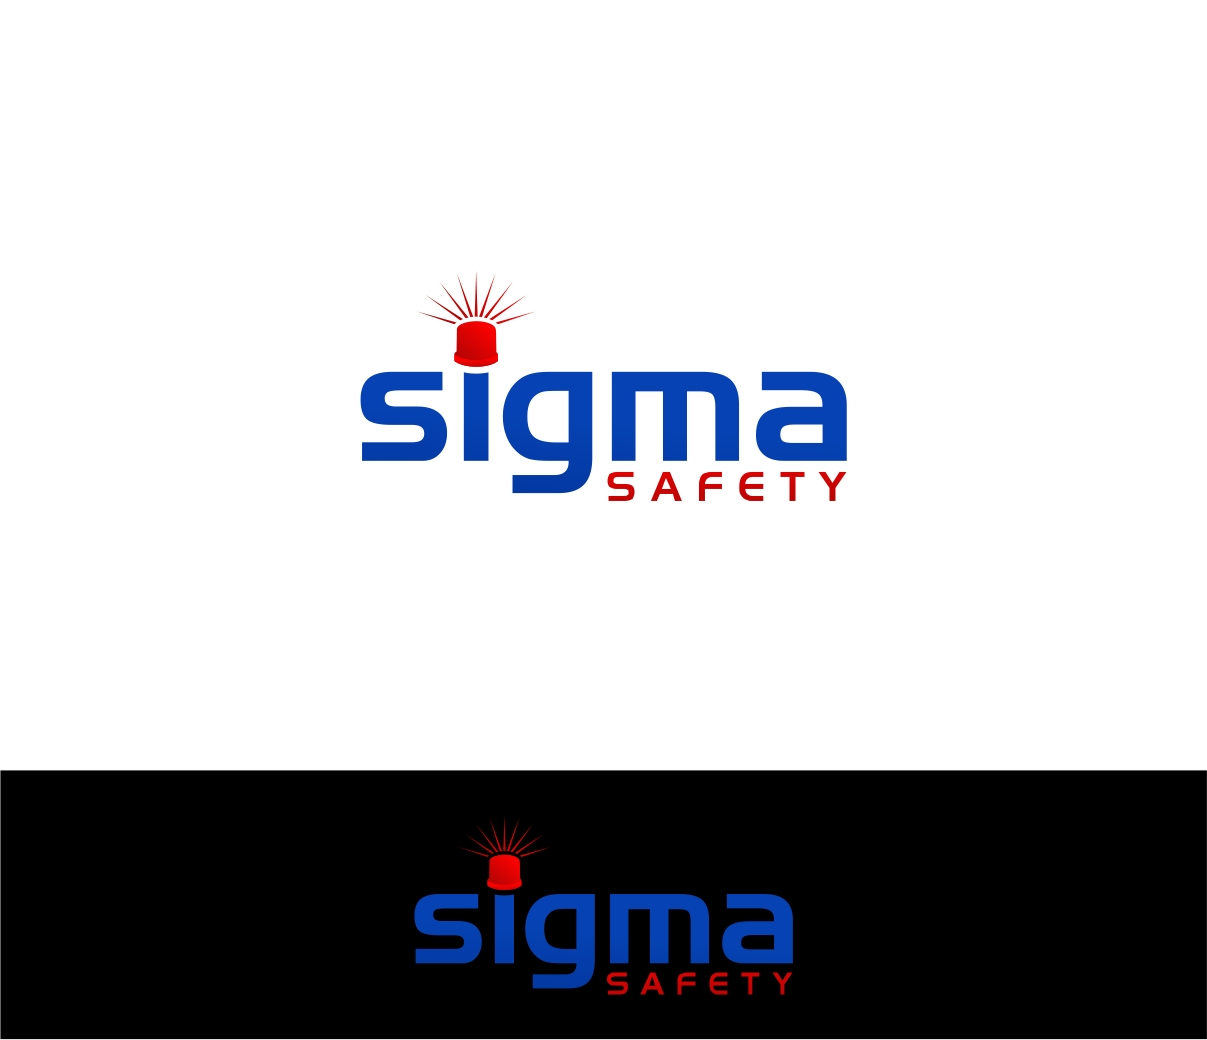 Logo Design by haidu - Entry No. 54 in the Logo Design Contest Creative Logo Design for Sigma Safety Corporation.